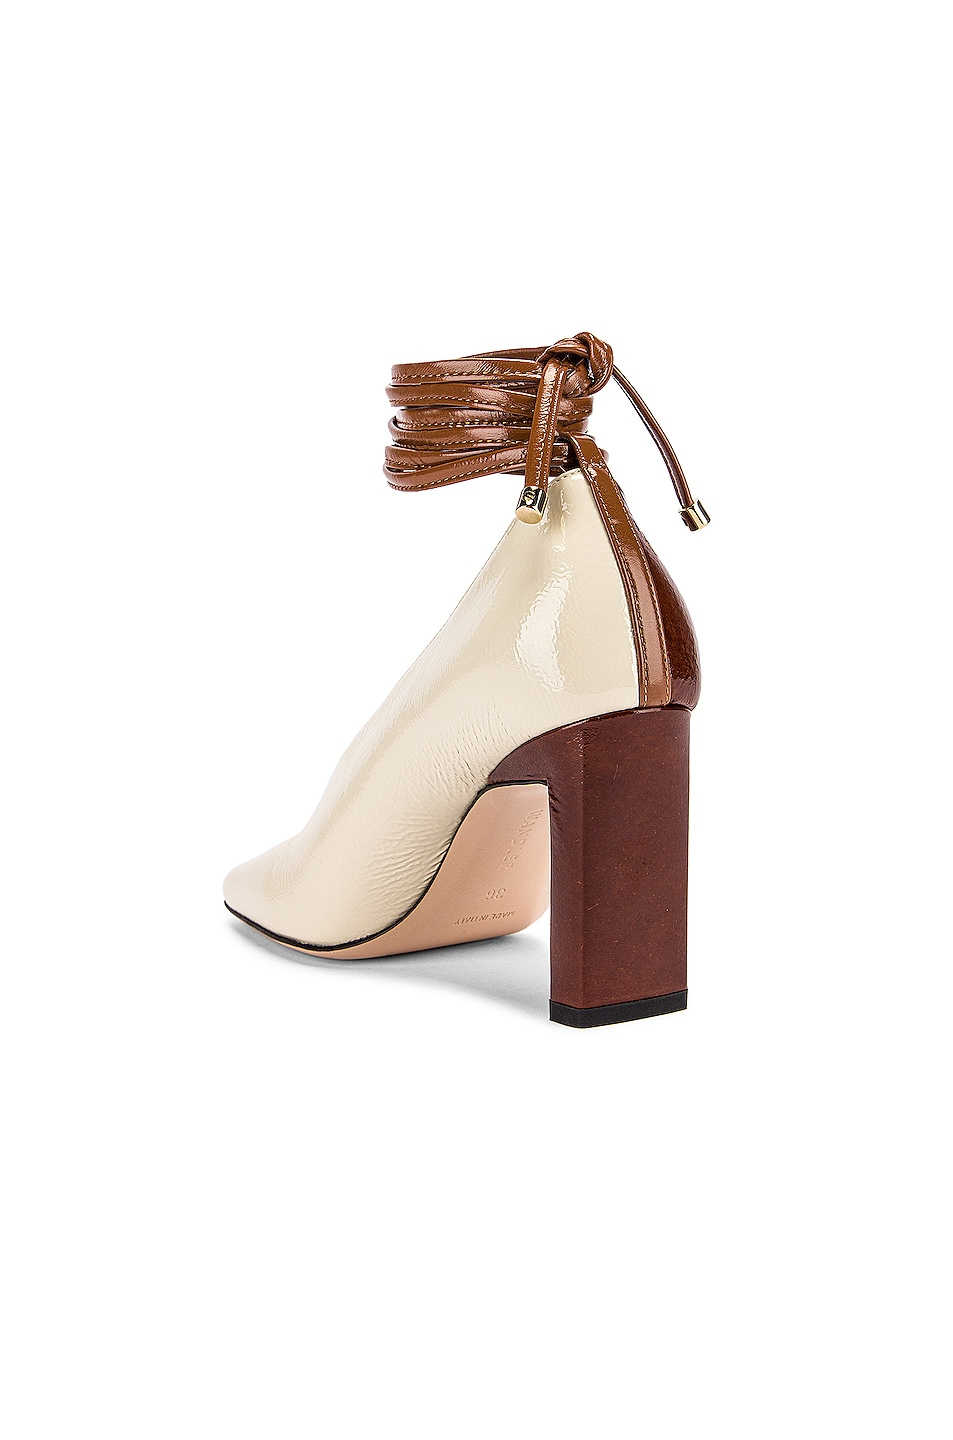 Image 4 of Wandler Isa Mules in Tan Shades